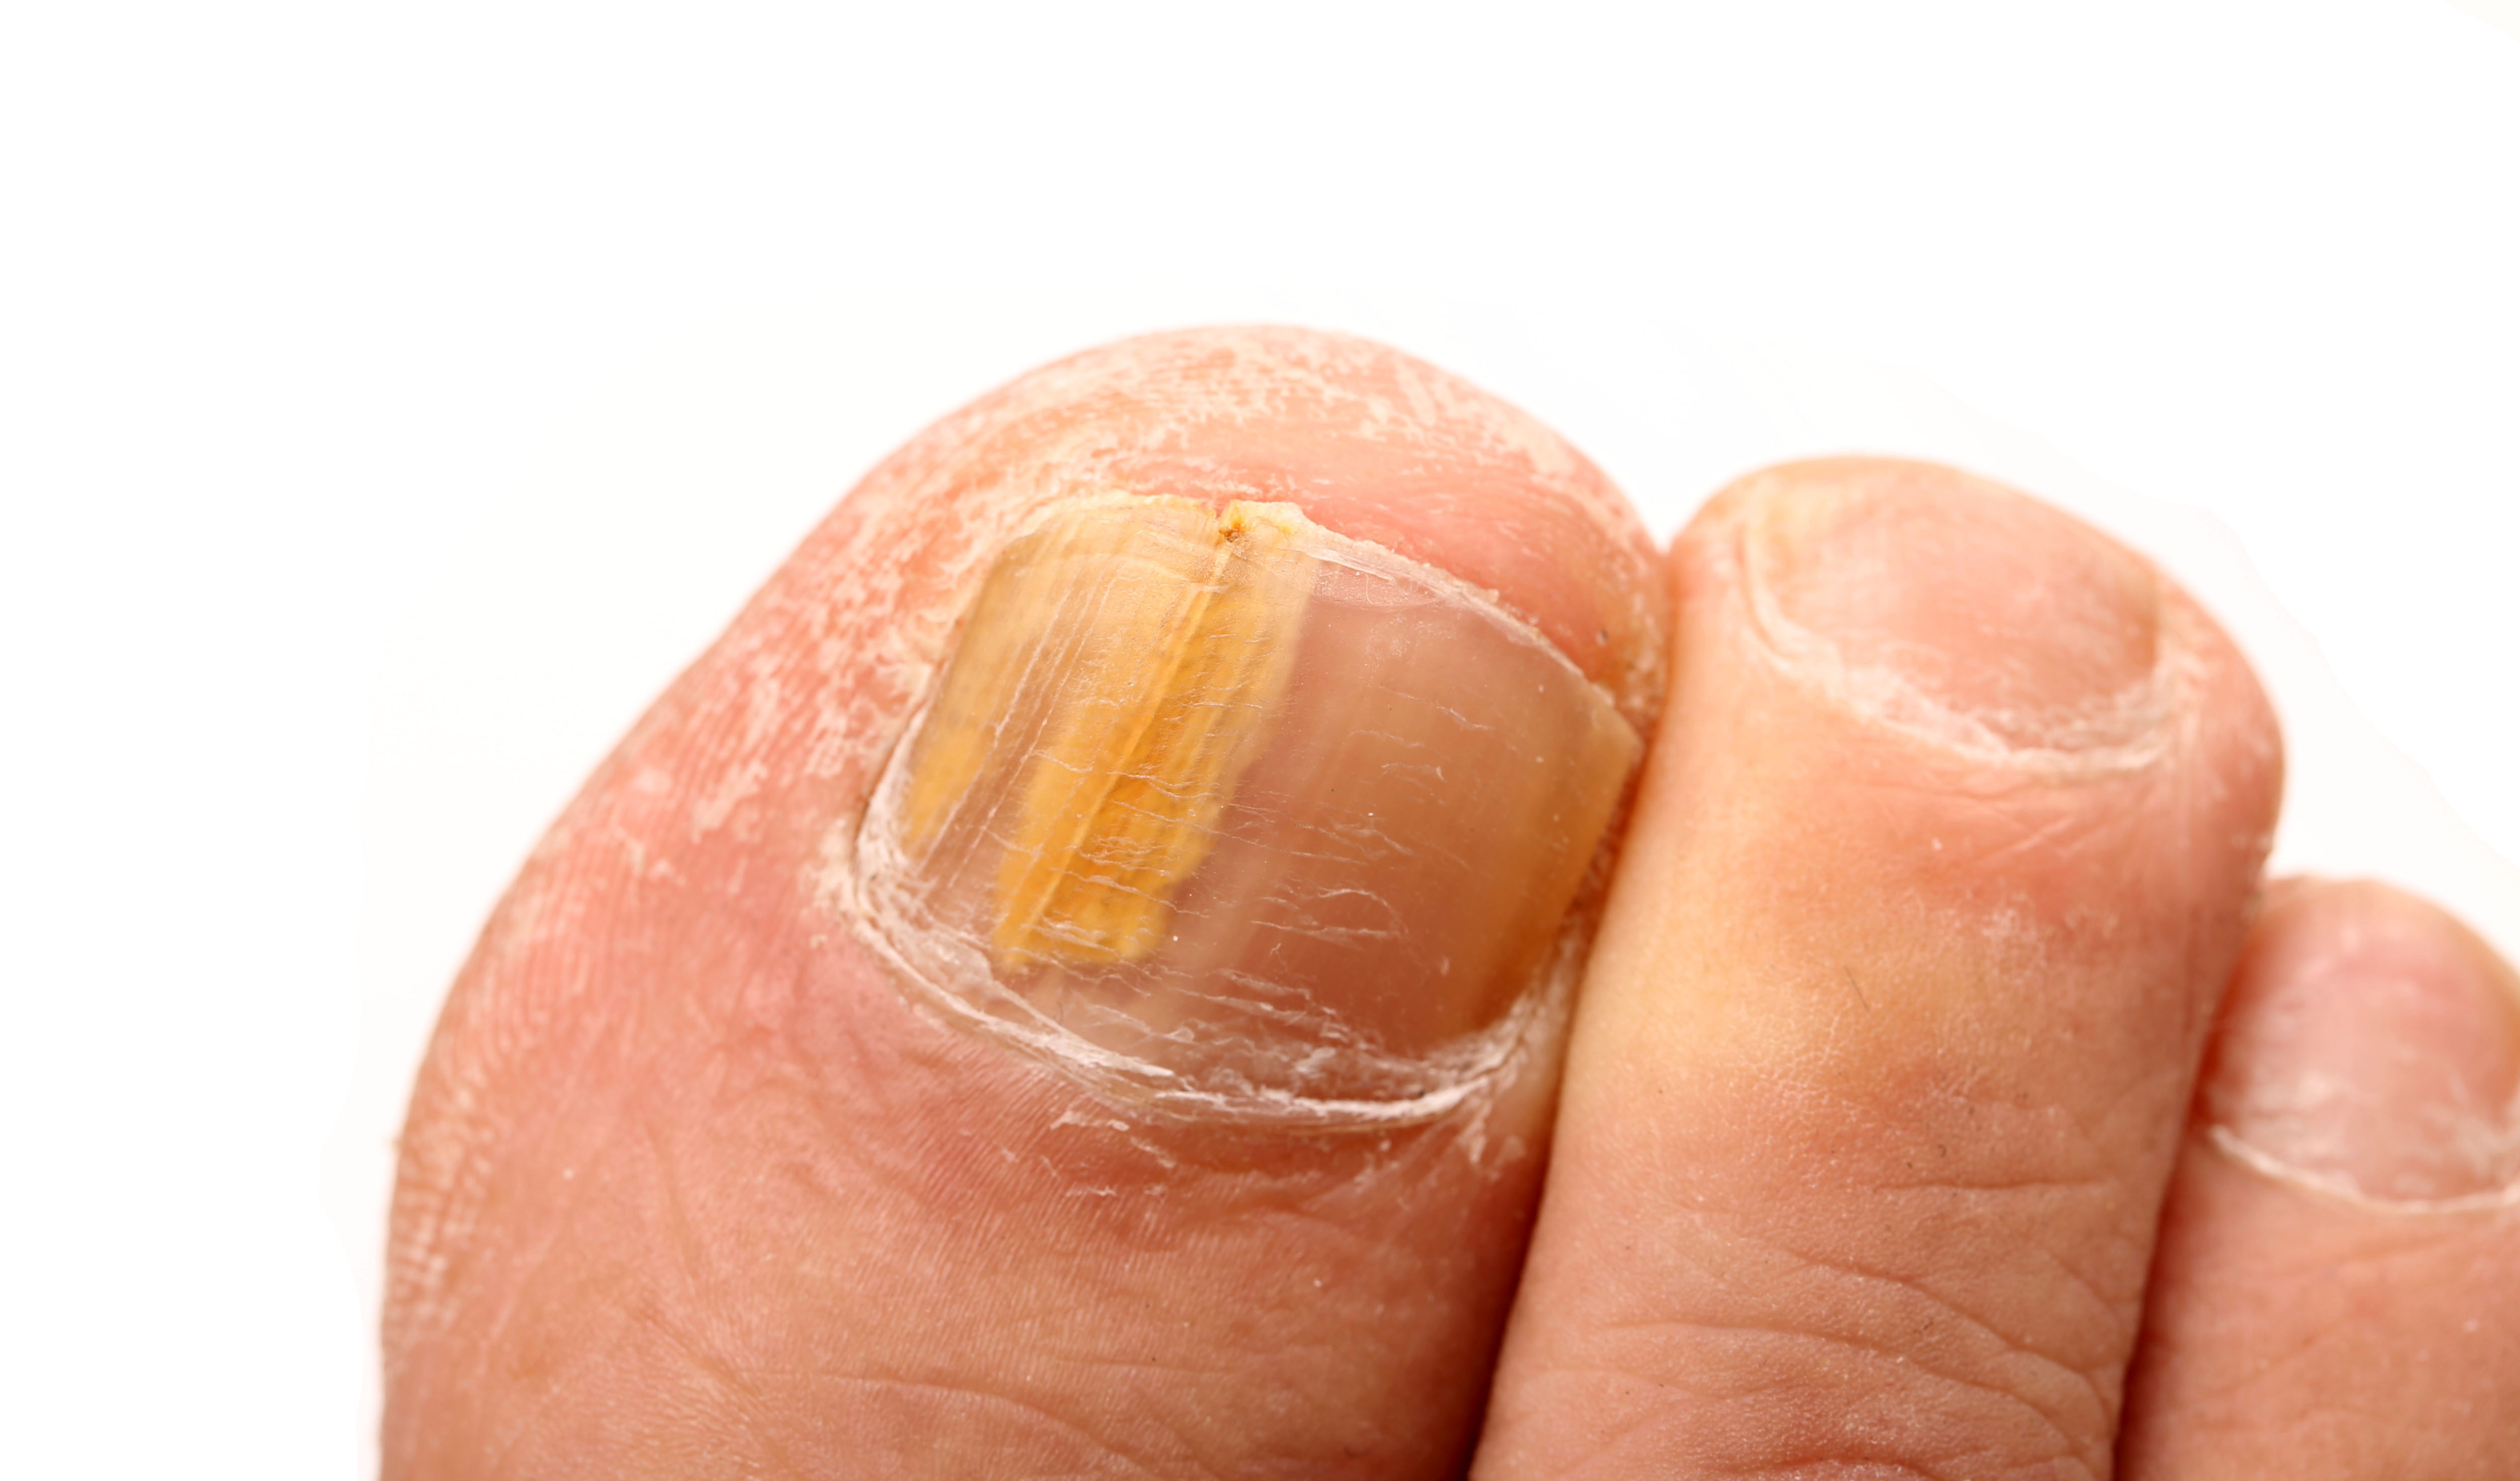 Fungal nail infection - Footwork